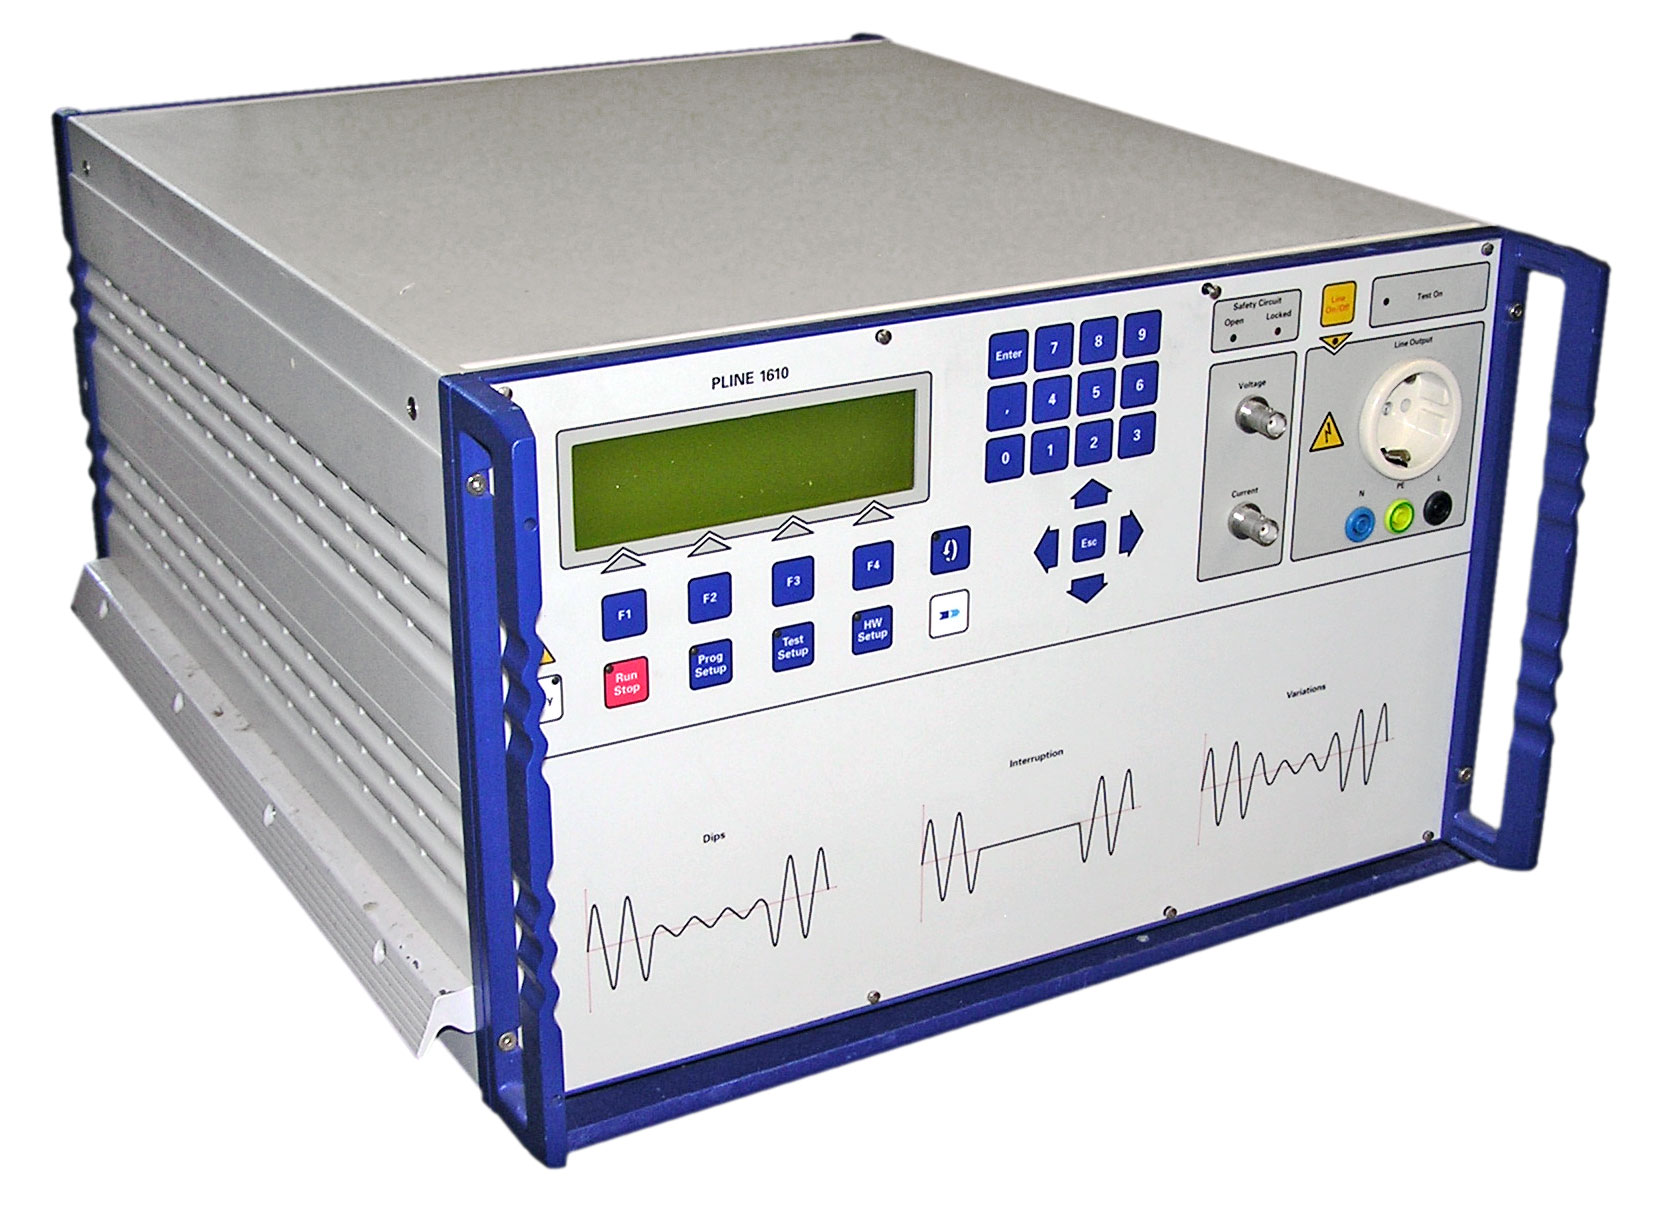 Haefely PLINE 1610 Voltage / Interruption Tester for IEC 61000-4-11